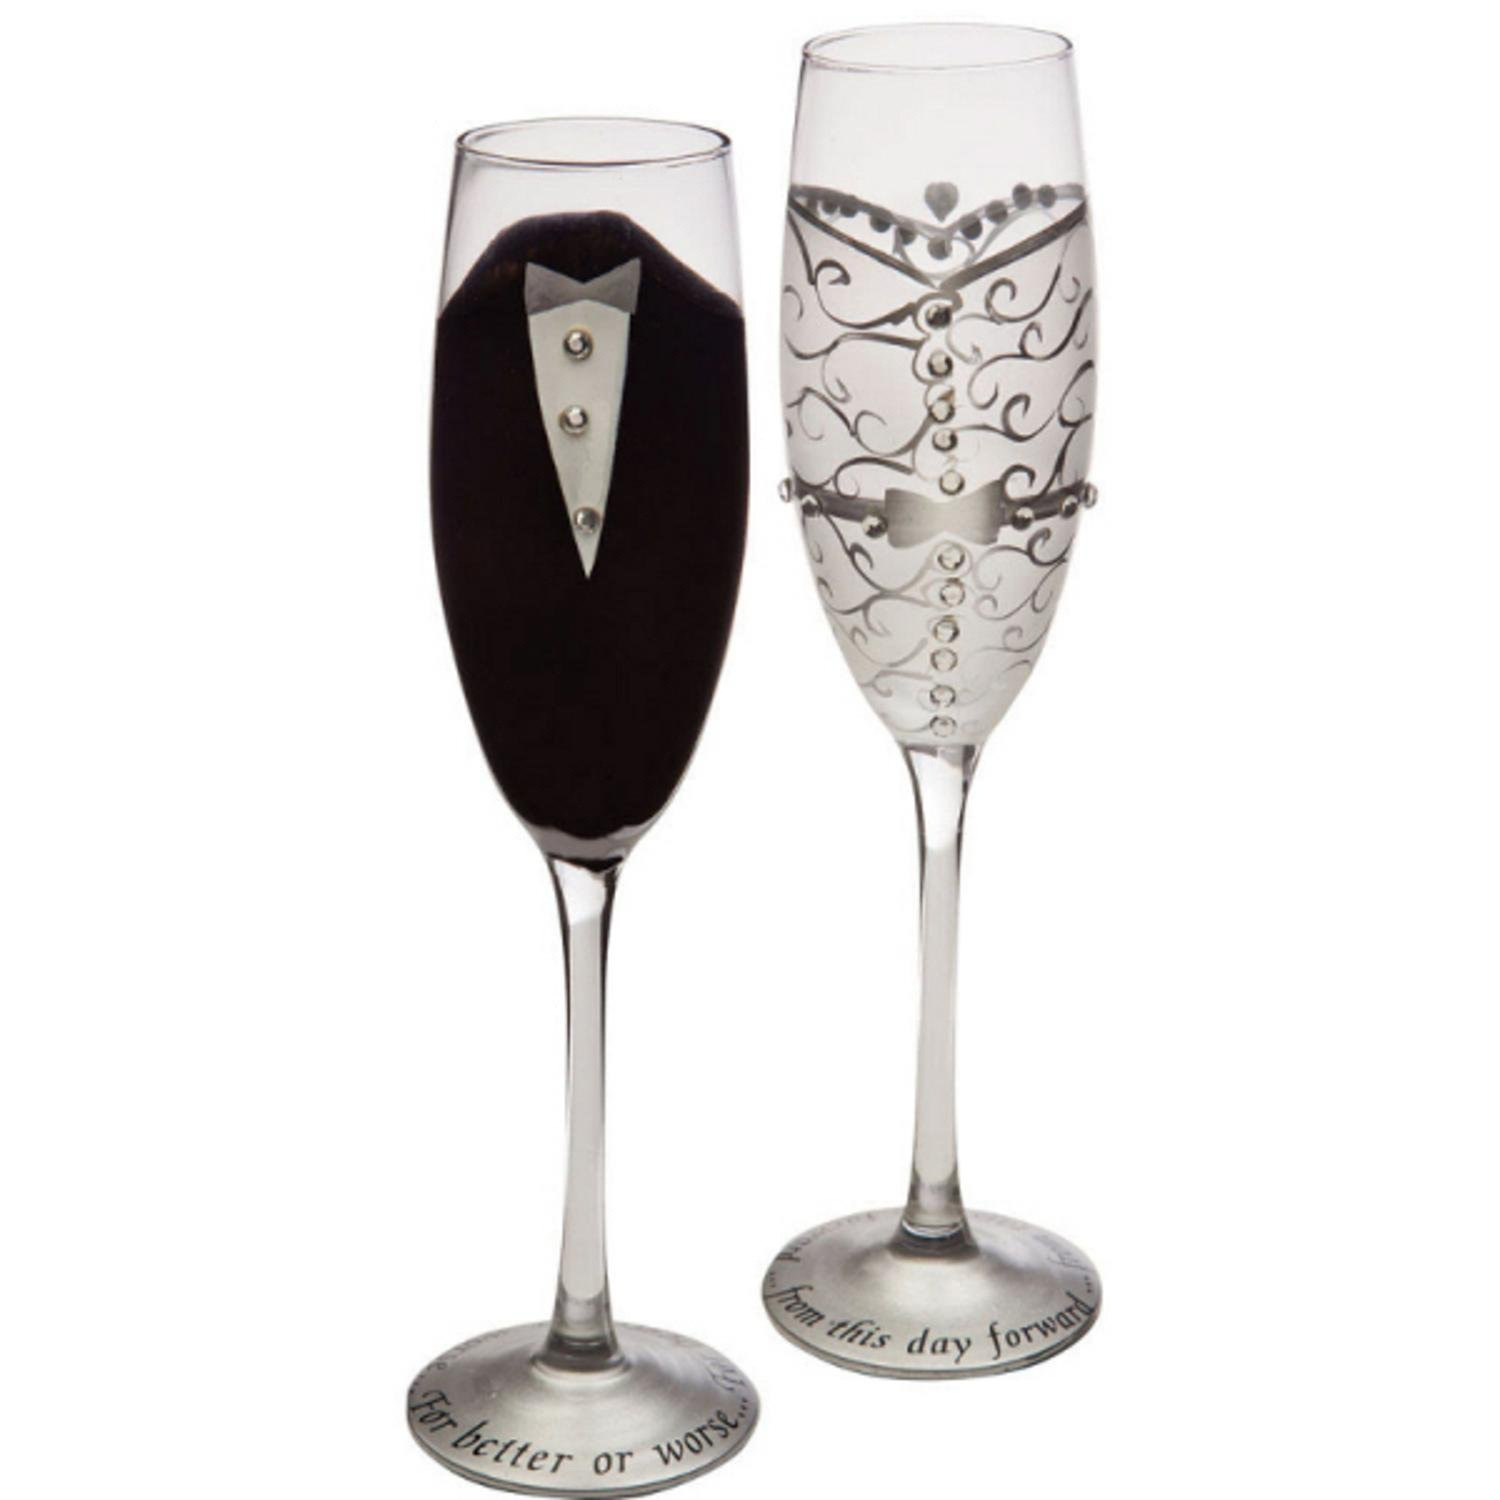 Set of 2 Handpainted Bride & Groom Champagne Toasting Flute Glasses 9 Gifted Living 746851441738